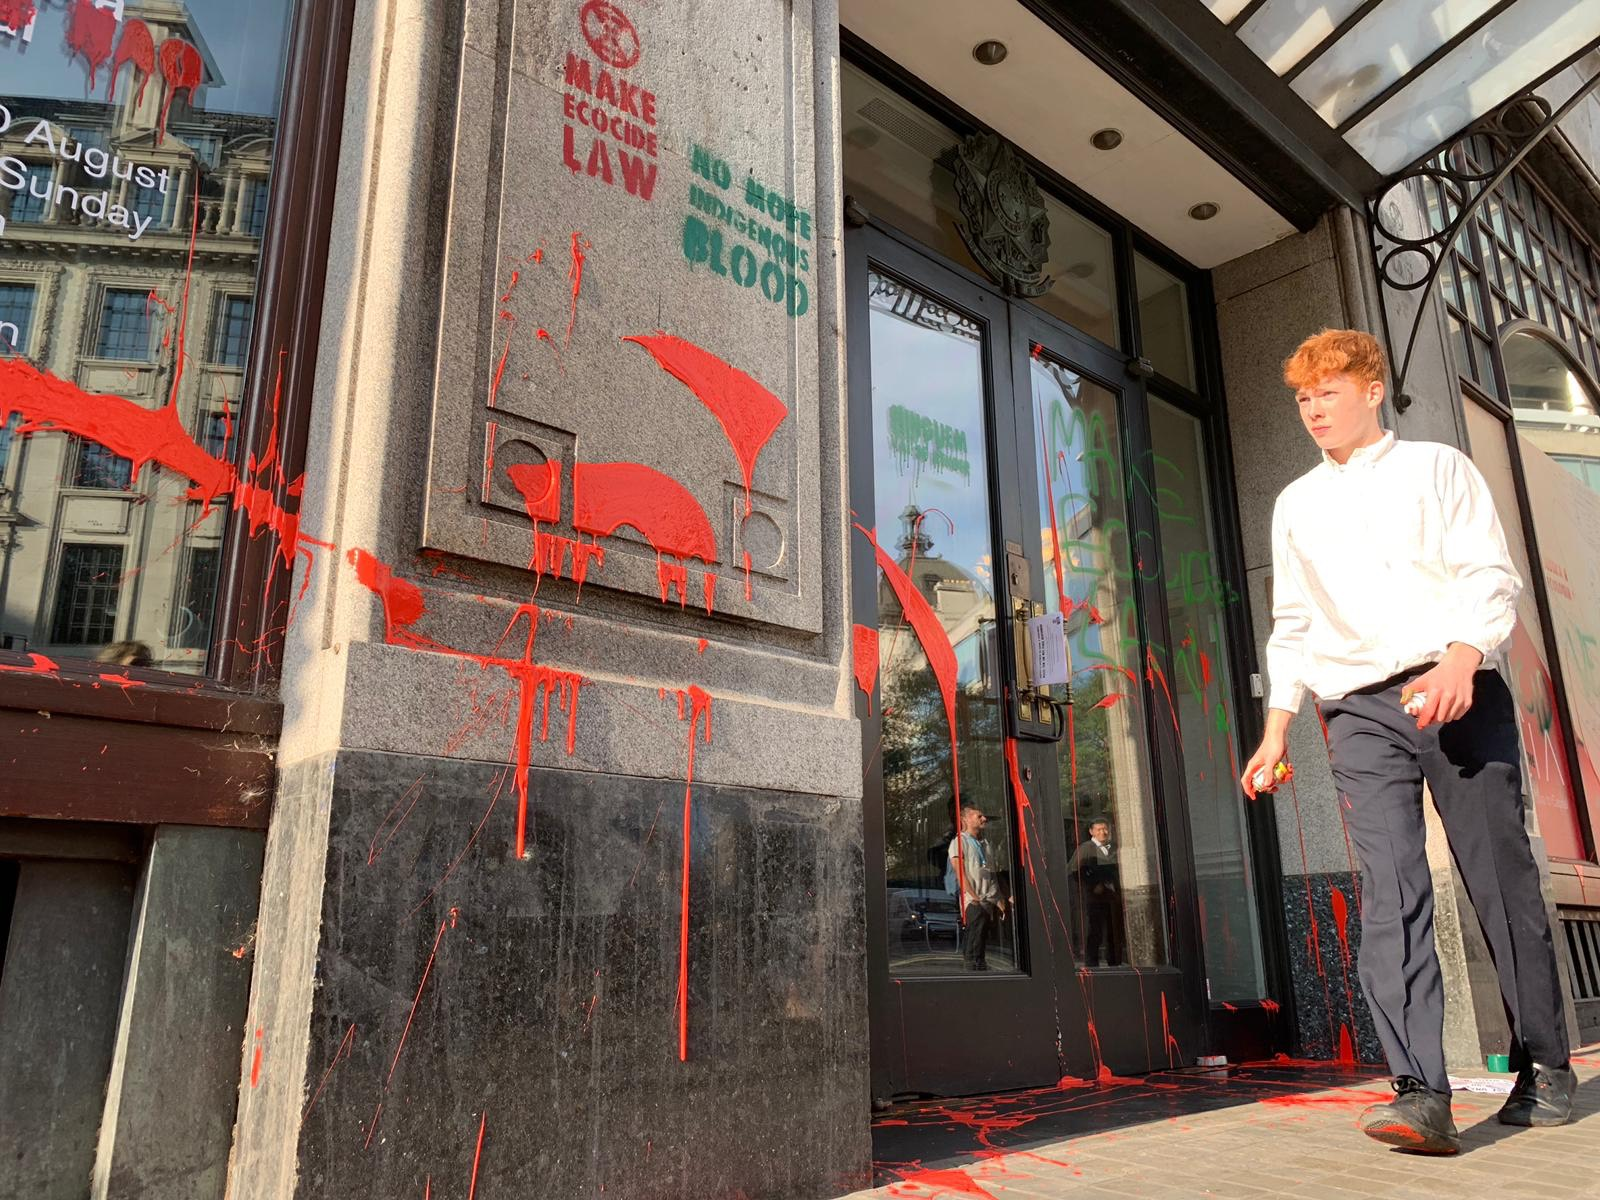 Climate protesters throw red paint at Brazil's London embassy